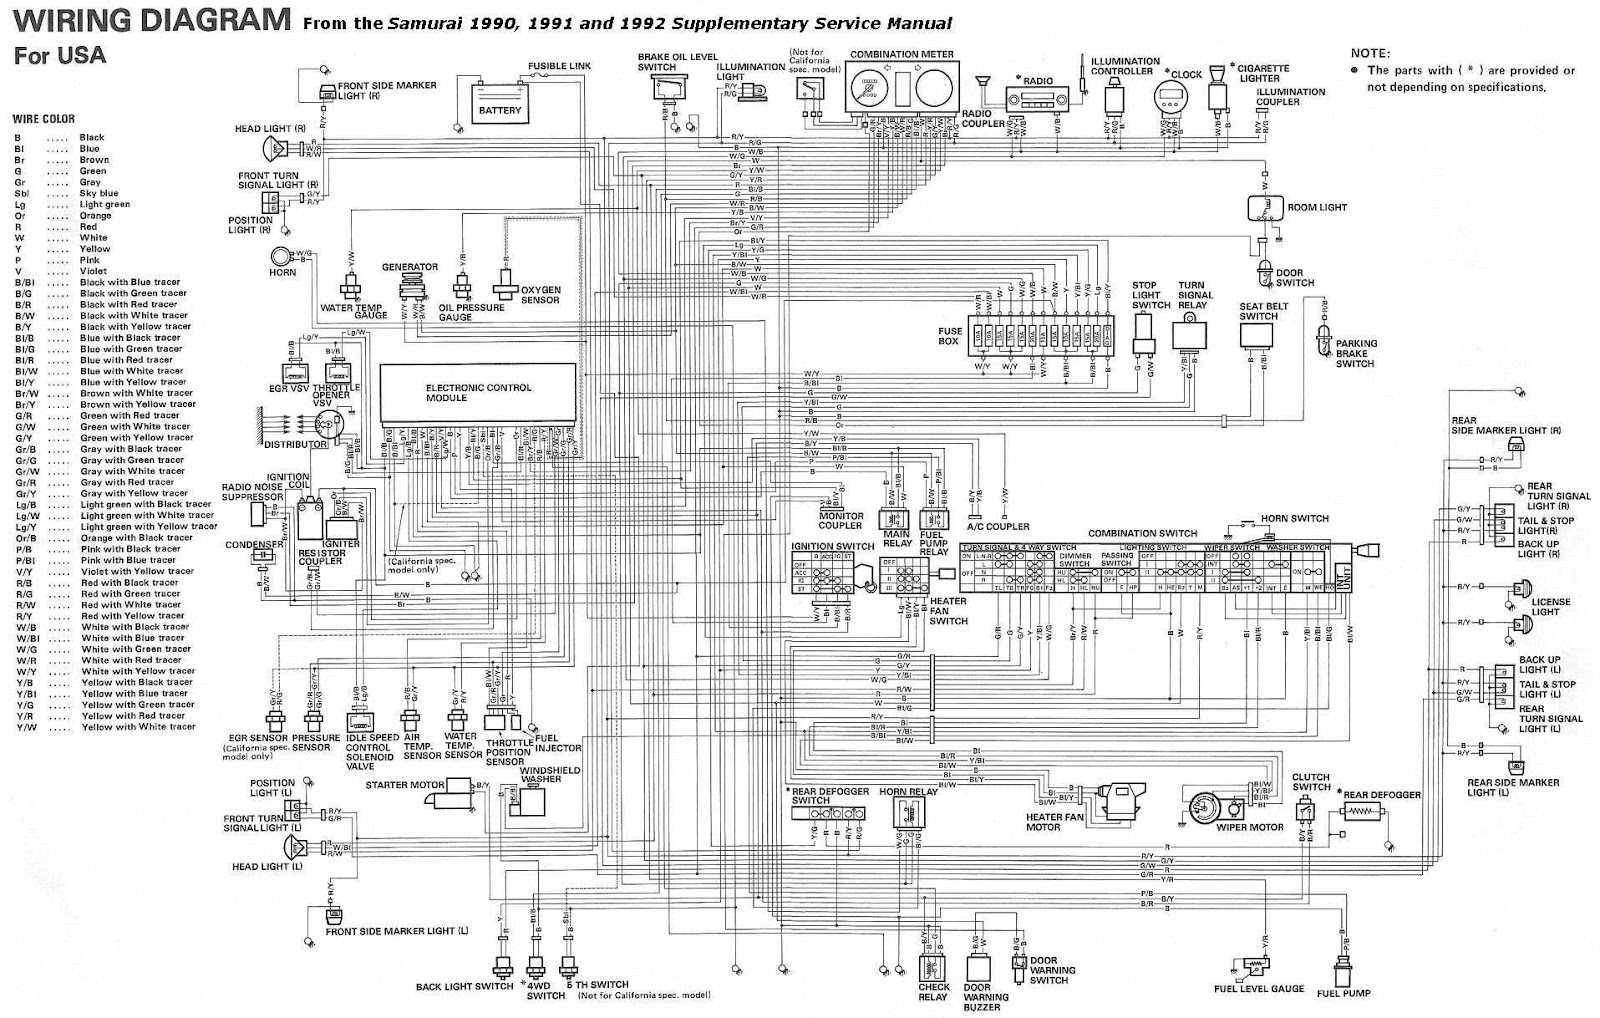 Suzuki+Samurai+1990 1992+Complete+Electrical+Wiring+Diagram+(USA)?resized665%2C423 suzuki vitara wiring schematic efcaviation com 2006 suzuki grand vitara wiring diagram at soozxer.org